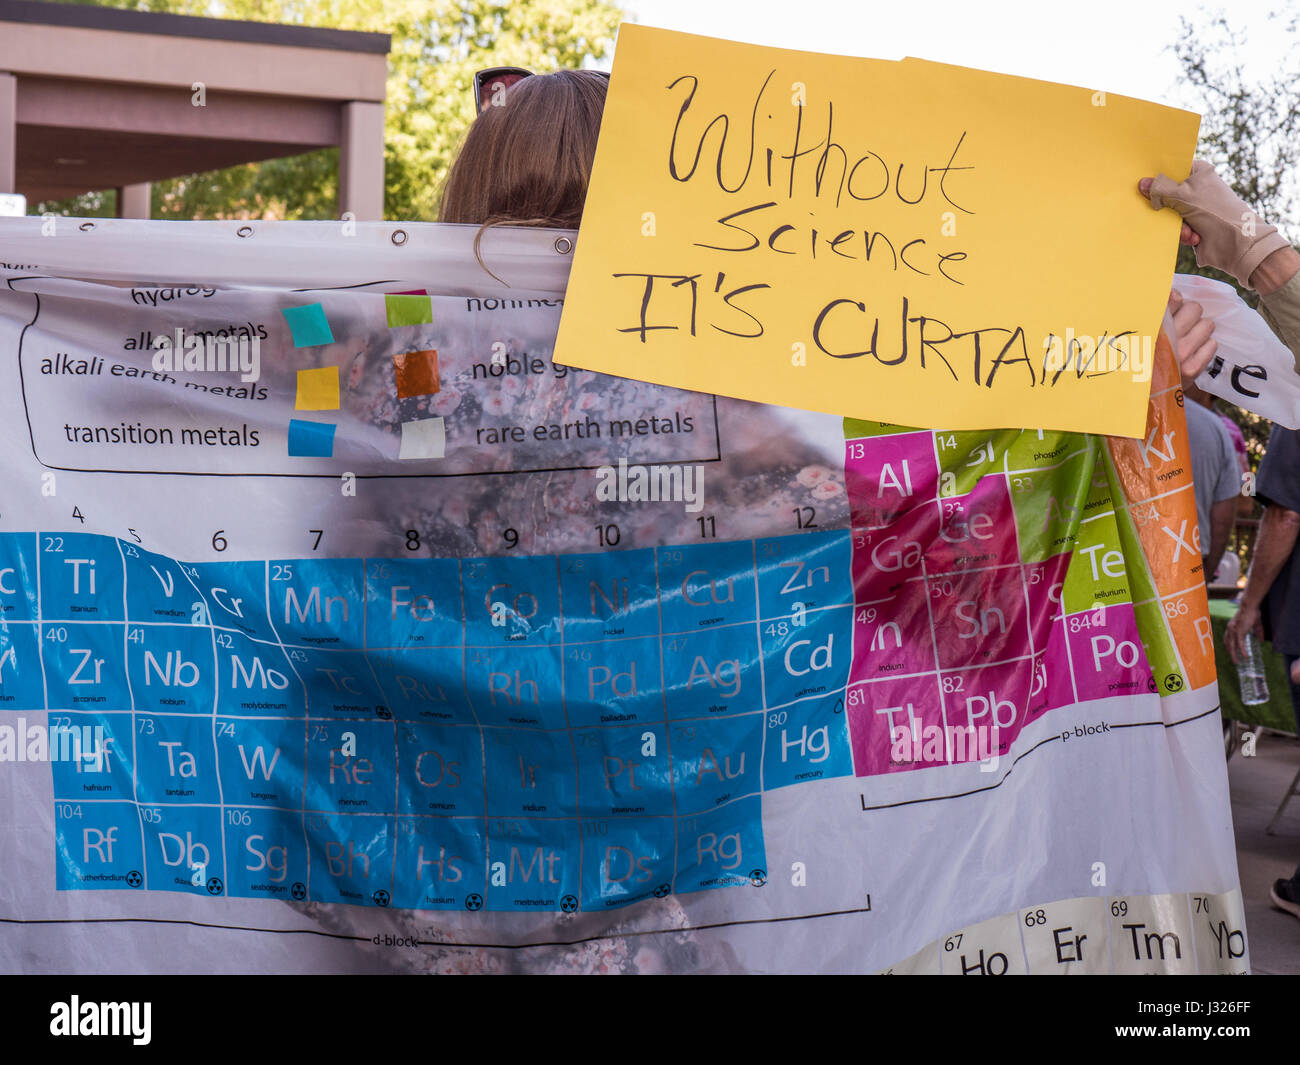 American citizens with protest signs at rally/march for Science on Earth Day 2017 in Arizona, USA. Stock Photo